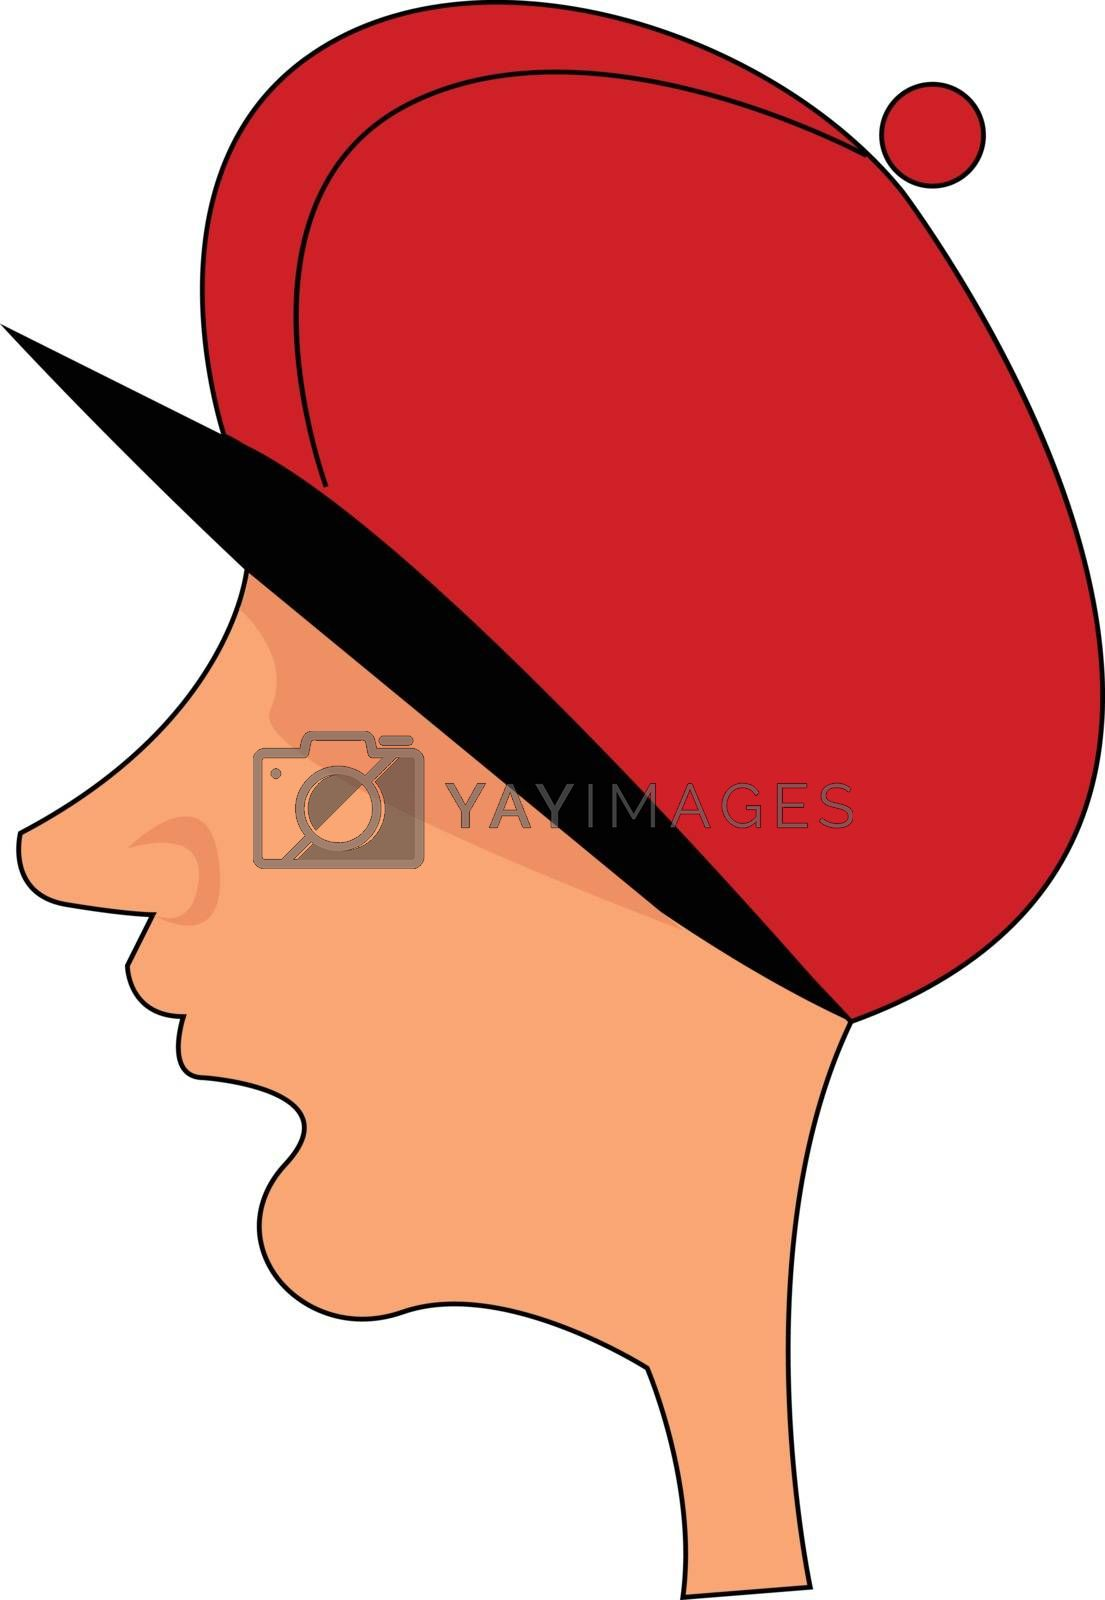 Royalty free image of Cartoon picture of a man's head set on isolated white background by Morphart